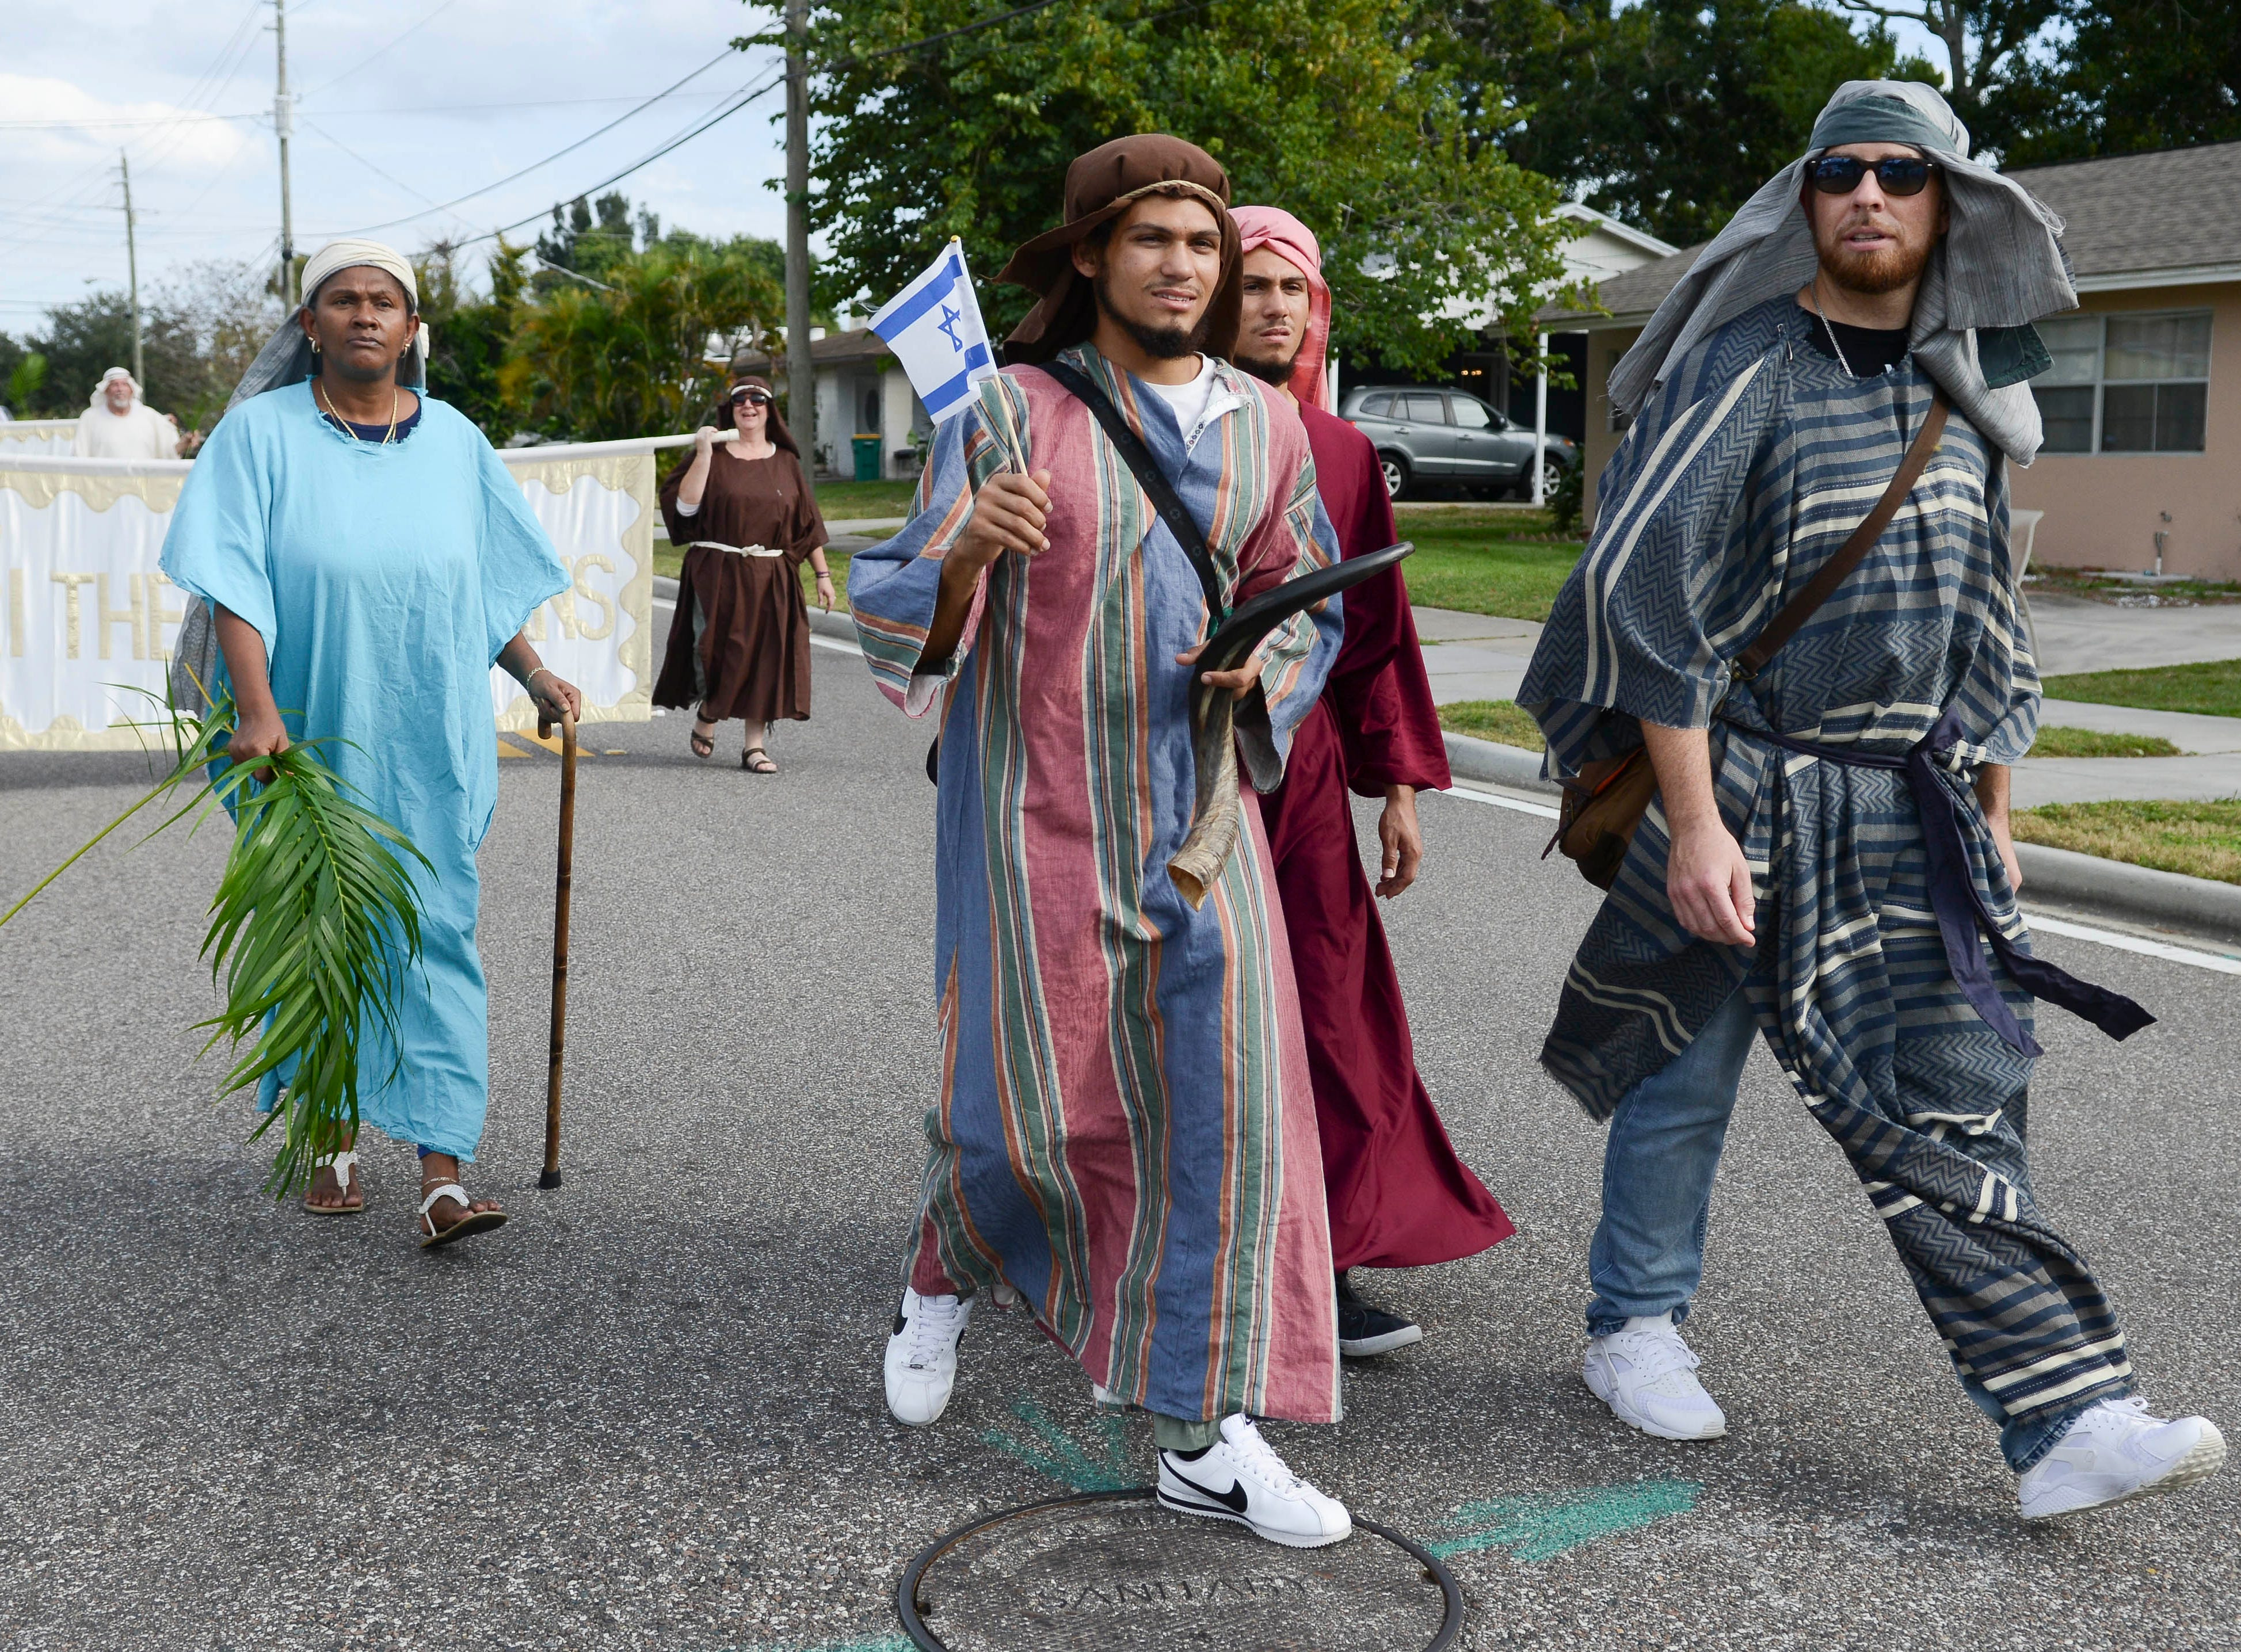 Scenes from the 2018 Bible on Parade through the streets of Melbourne, FL. Dozens of area church congregations participated in the annual event.